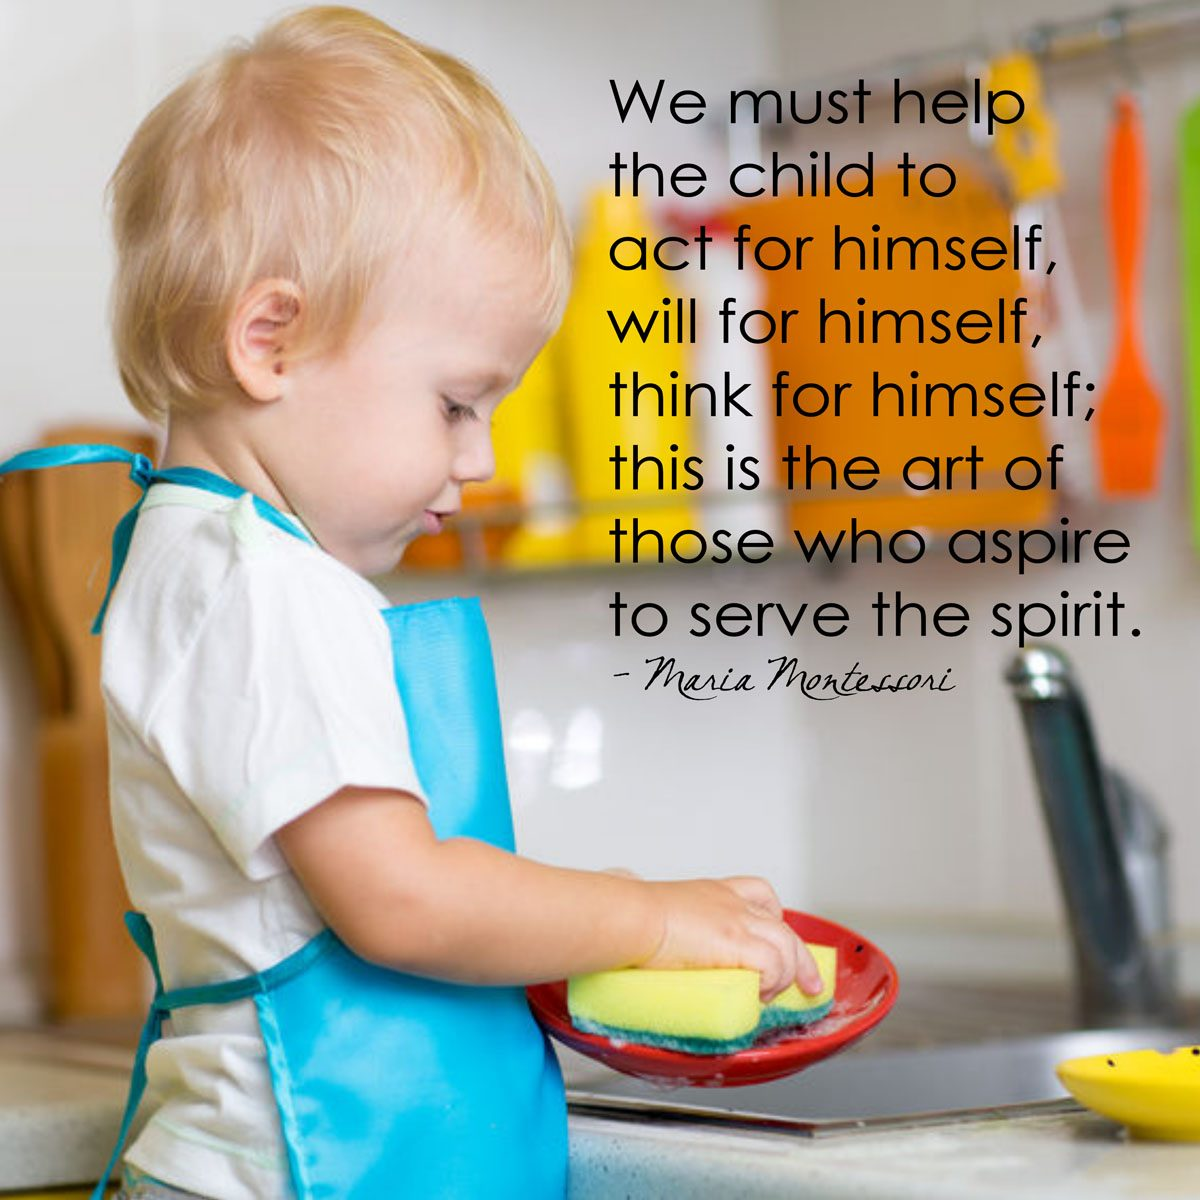 Help The Child To Act For Himself Montessori Word Art